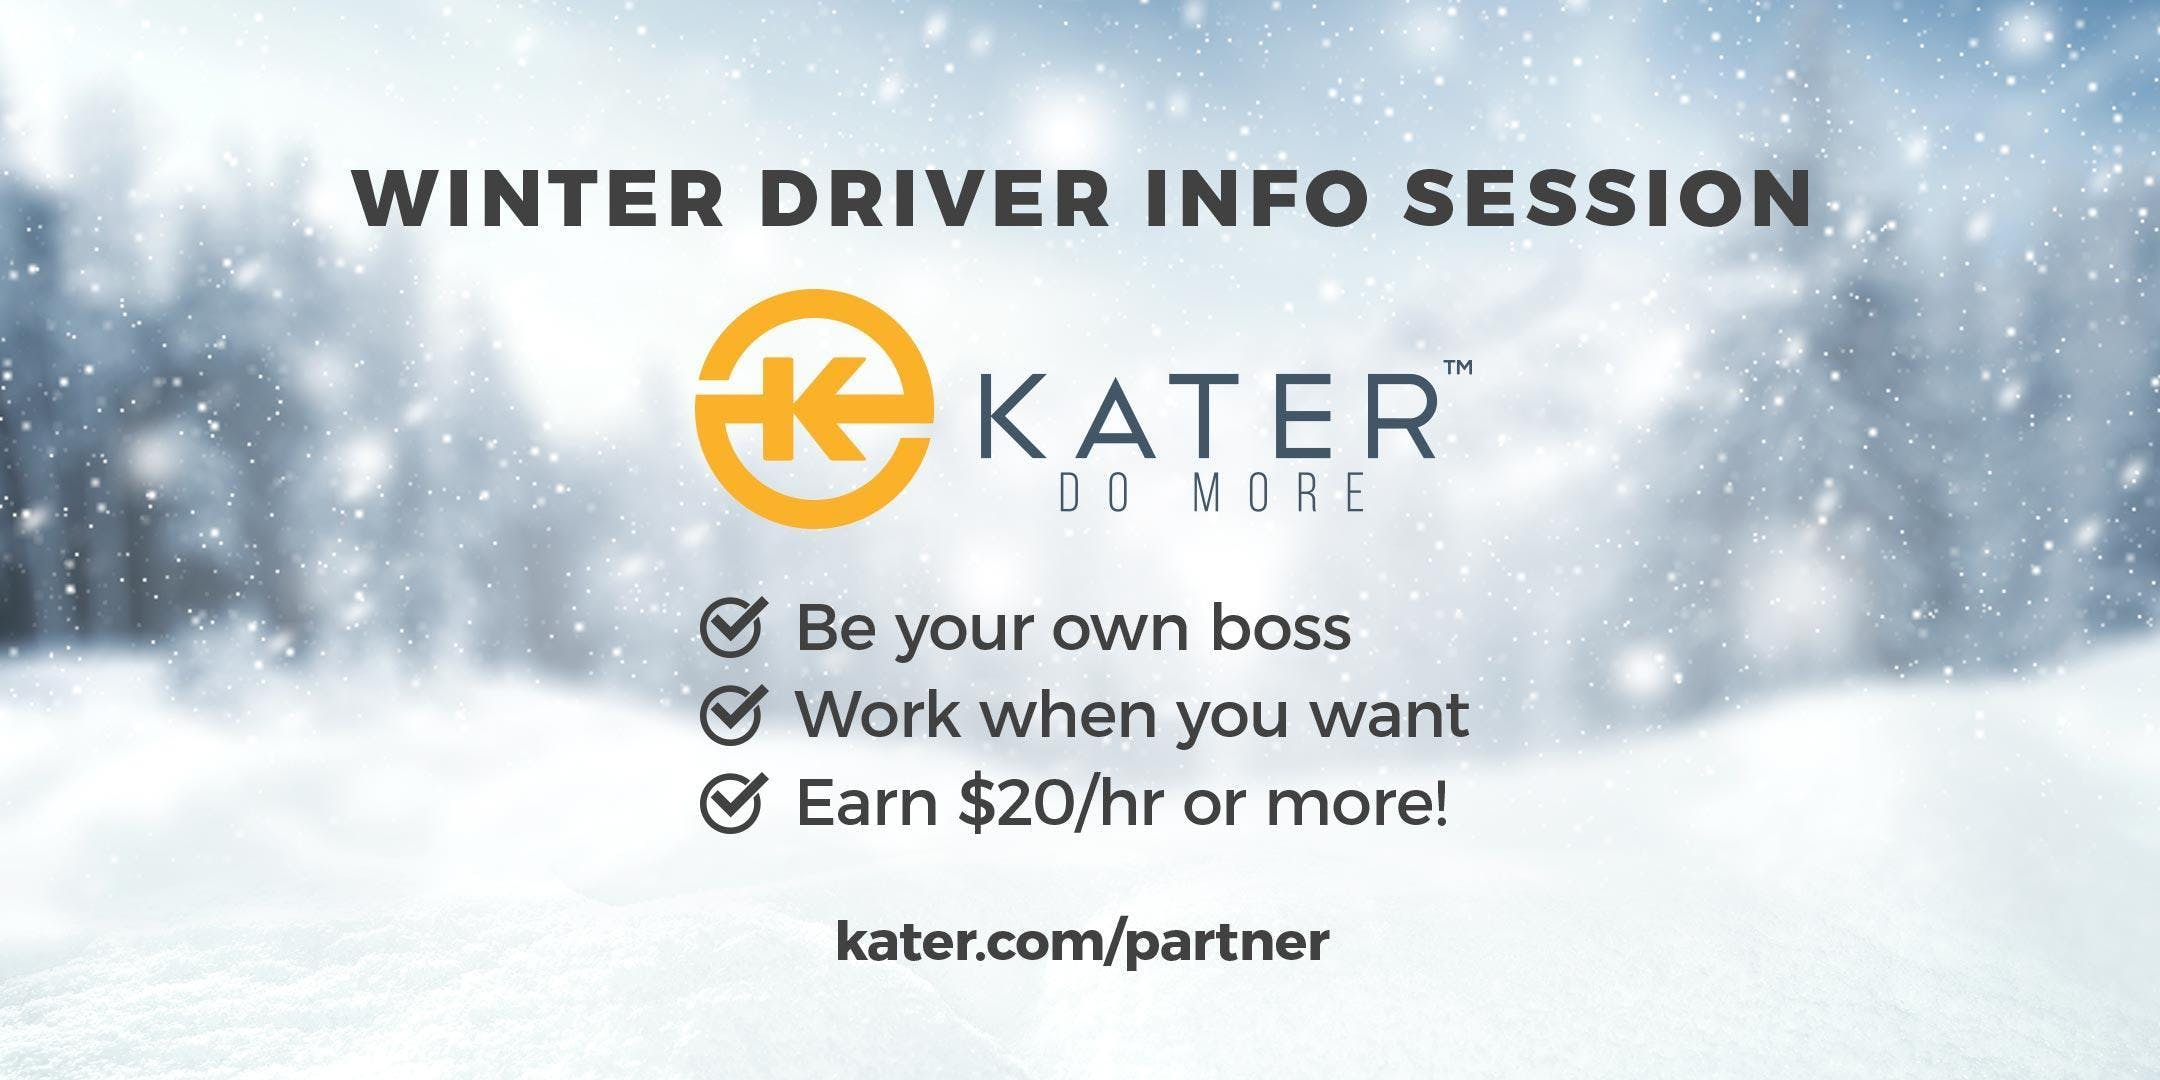 Kater Chauffeur / Winter Driver Info Session